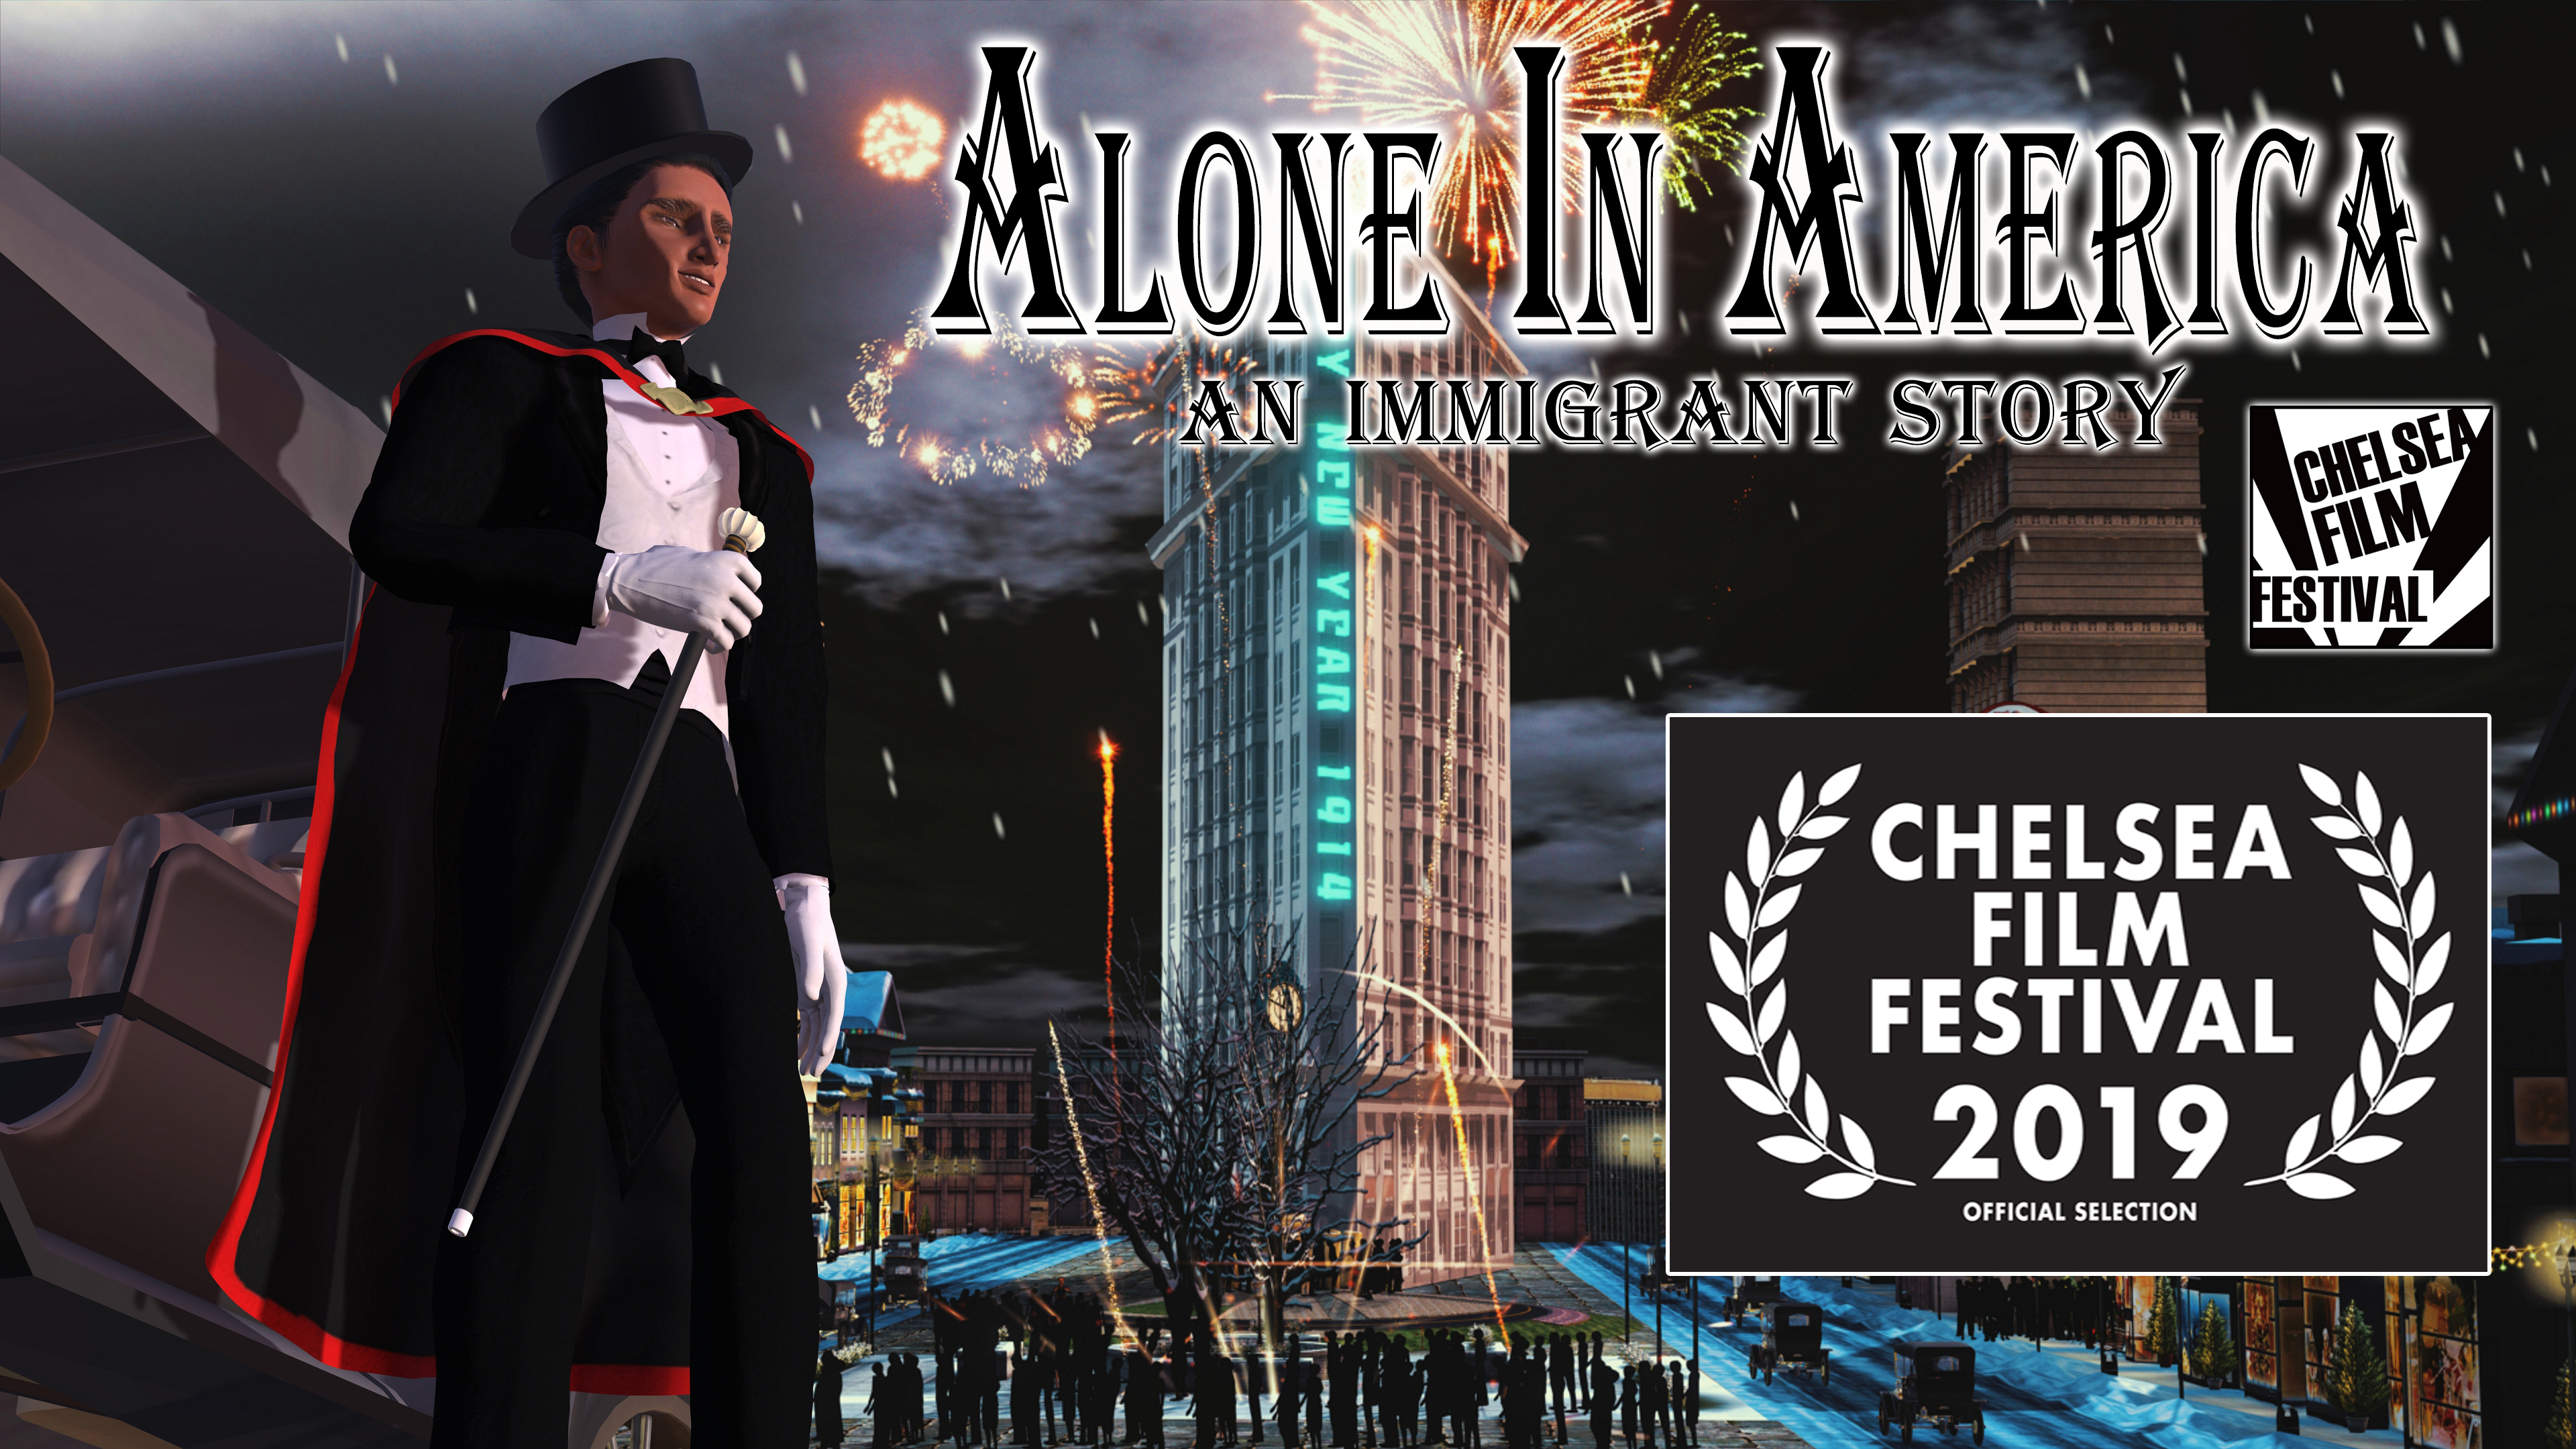 ALONE IN AMERICA - AN IMMIGRANT STORY Officially Selected For The Chelsea Film Festival in New York City